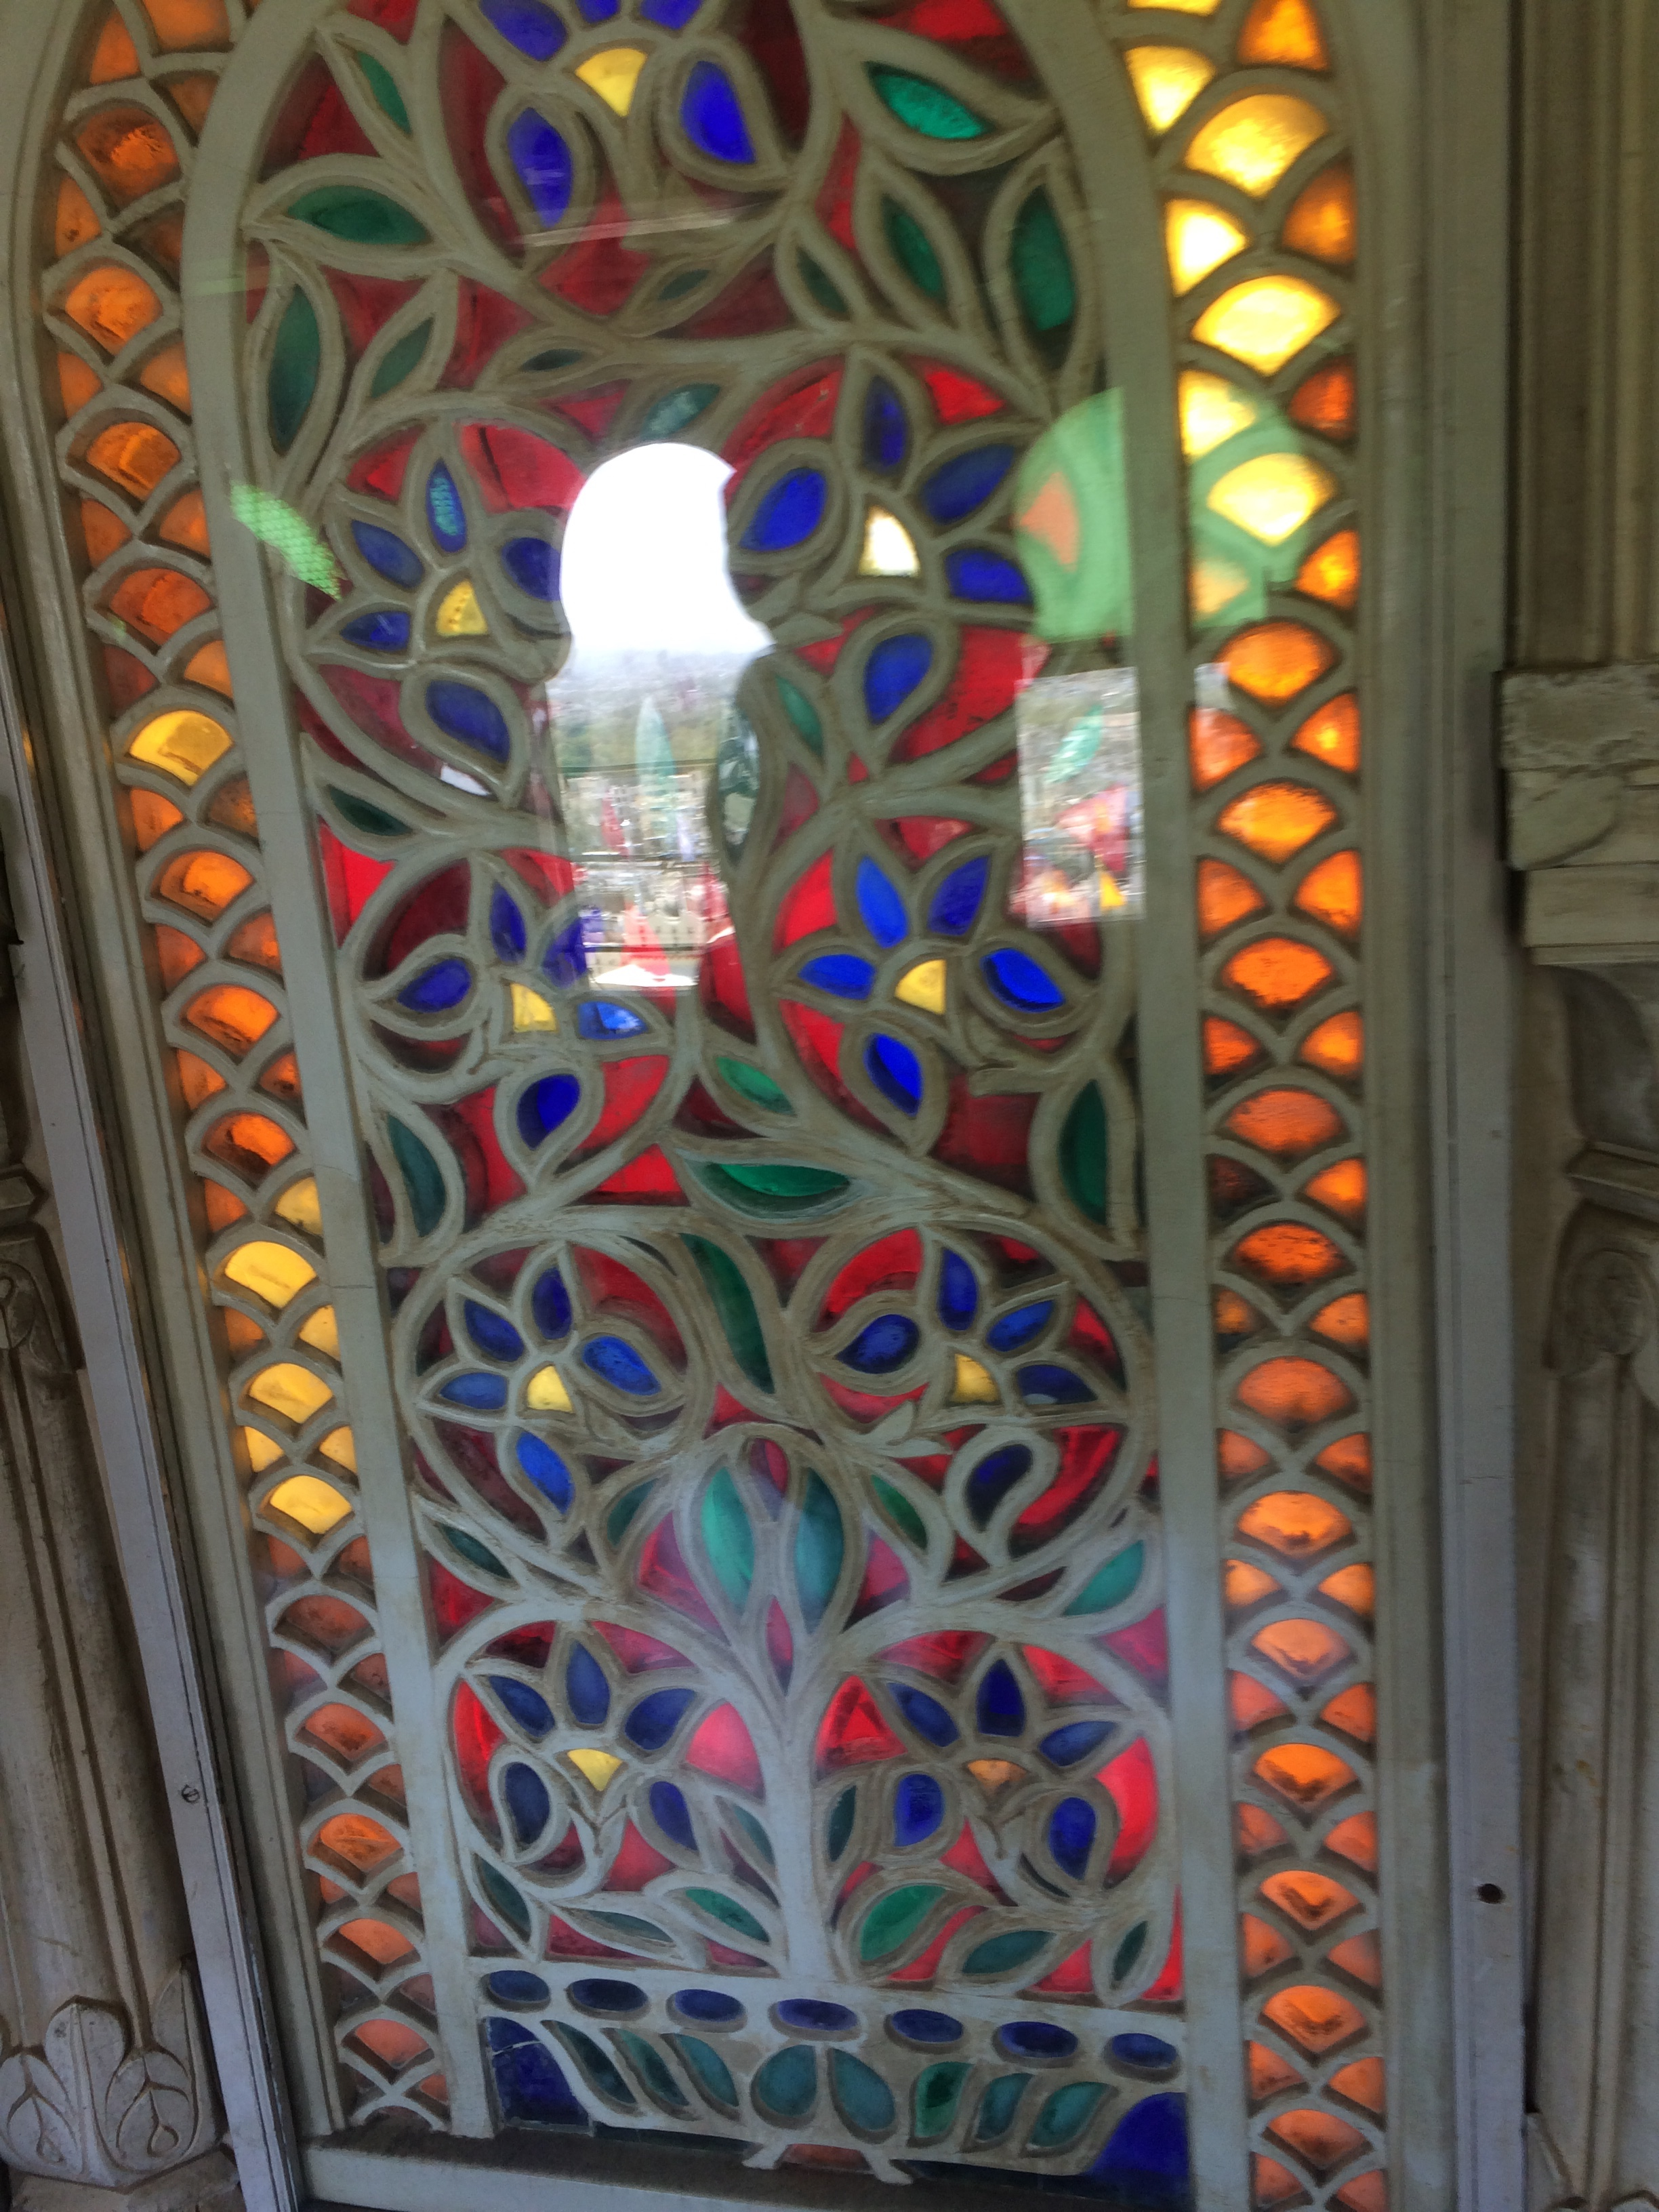 Mosaic multicolored stained glass window